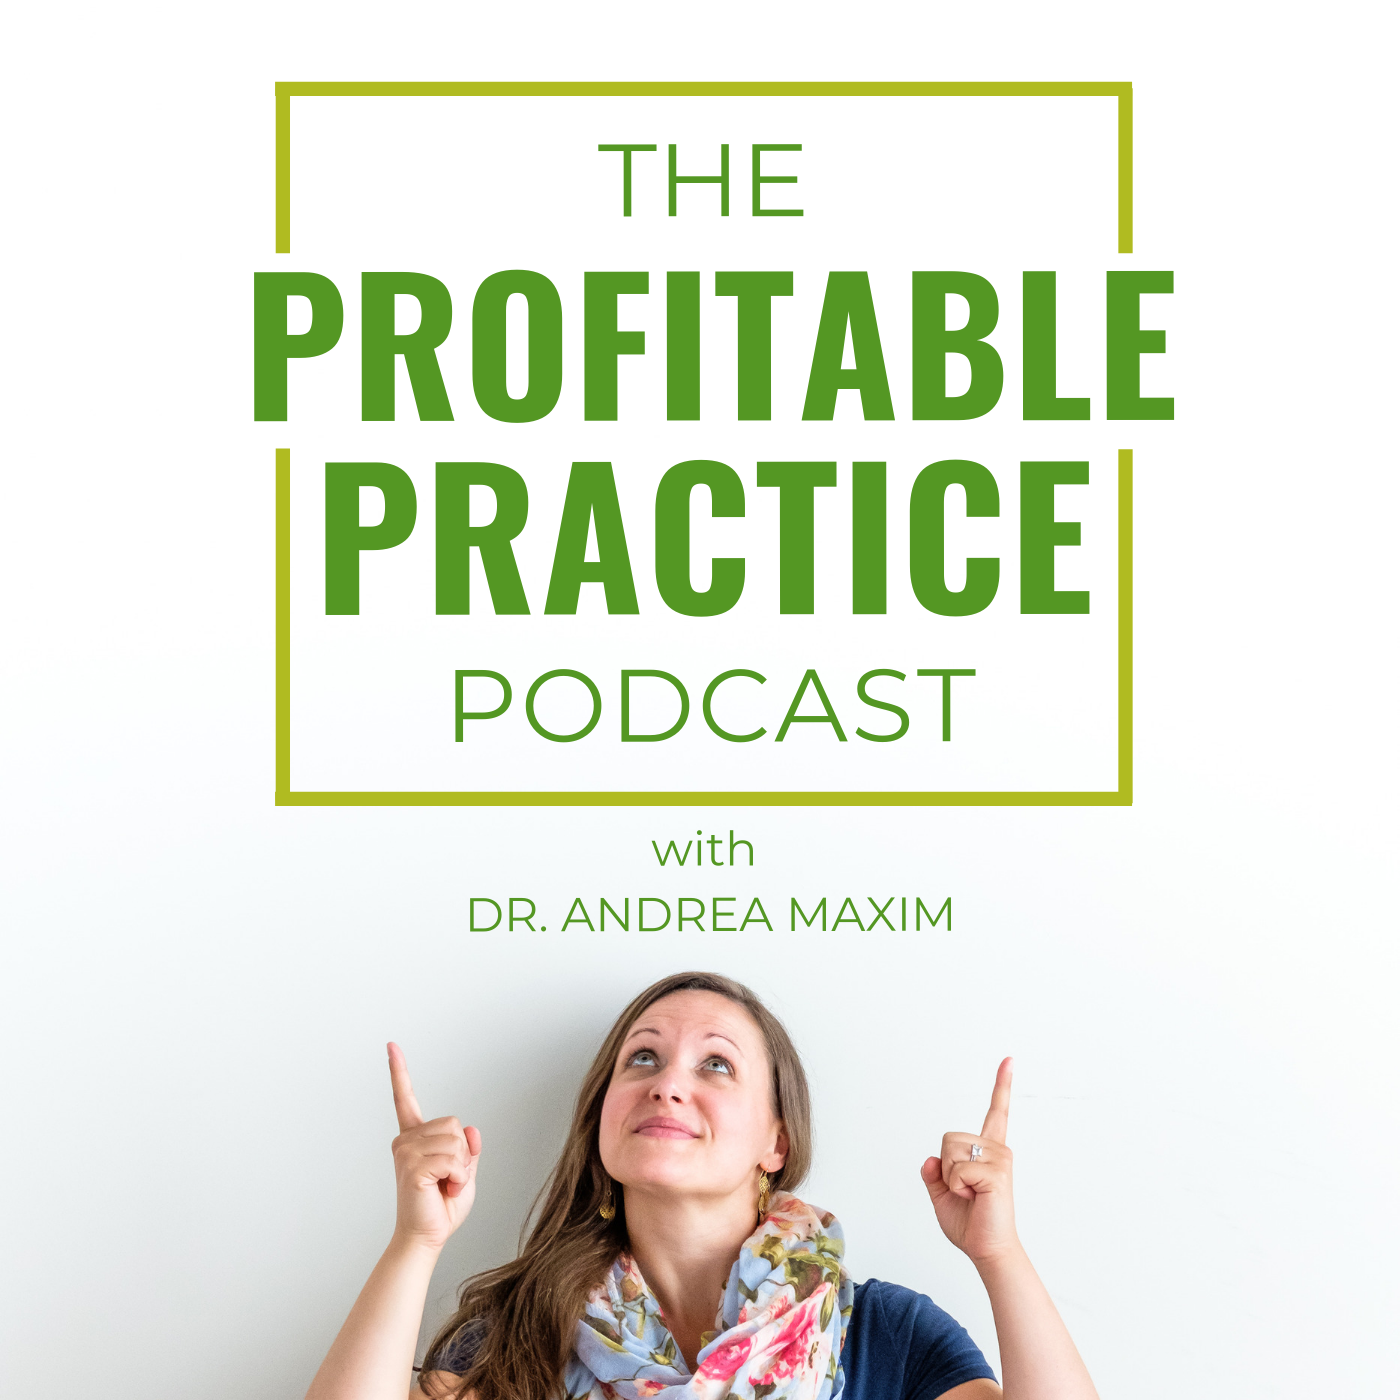 The Profitable Practice Podcast